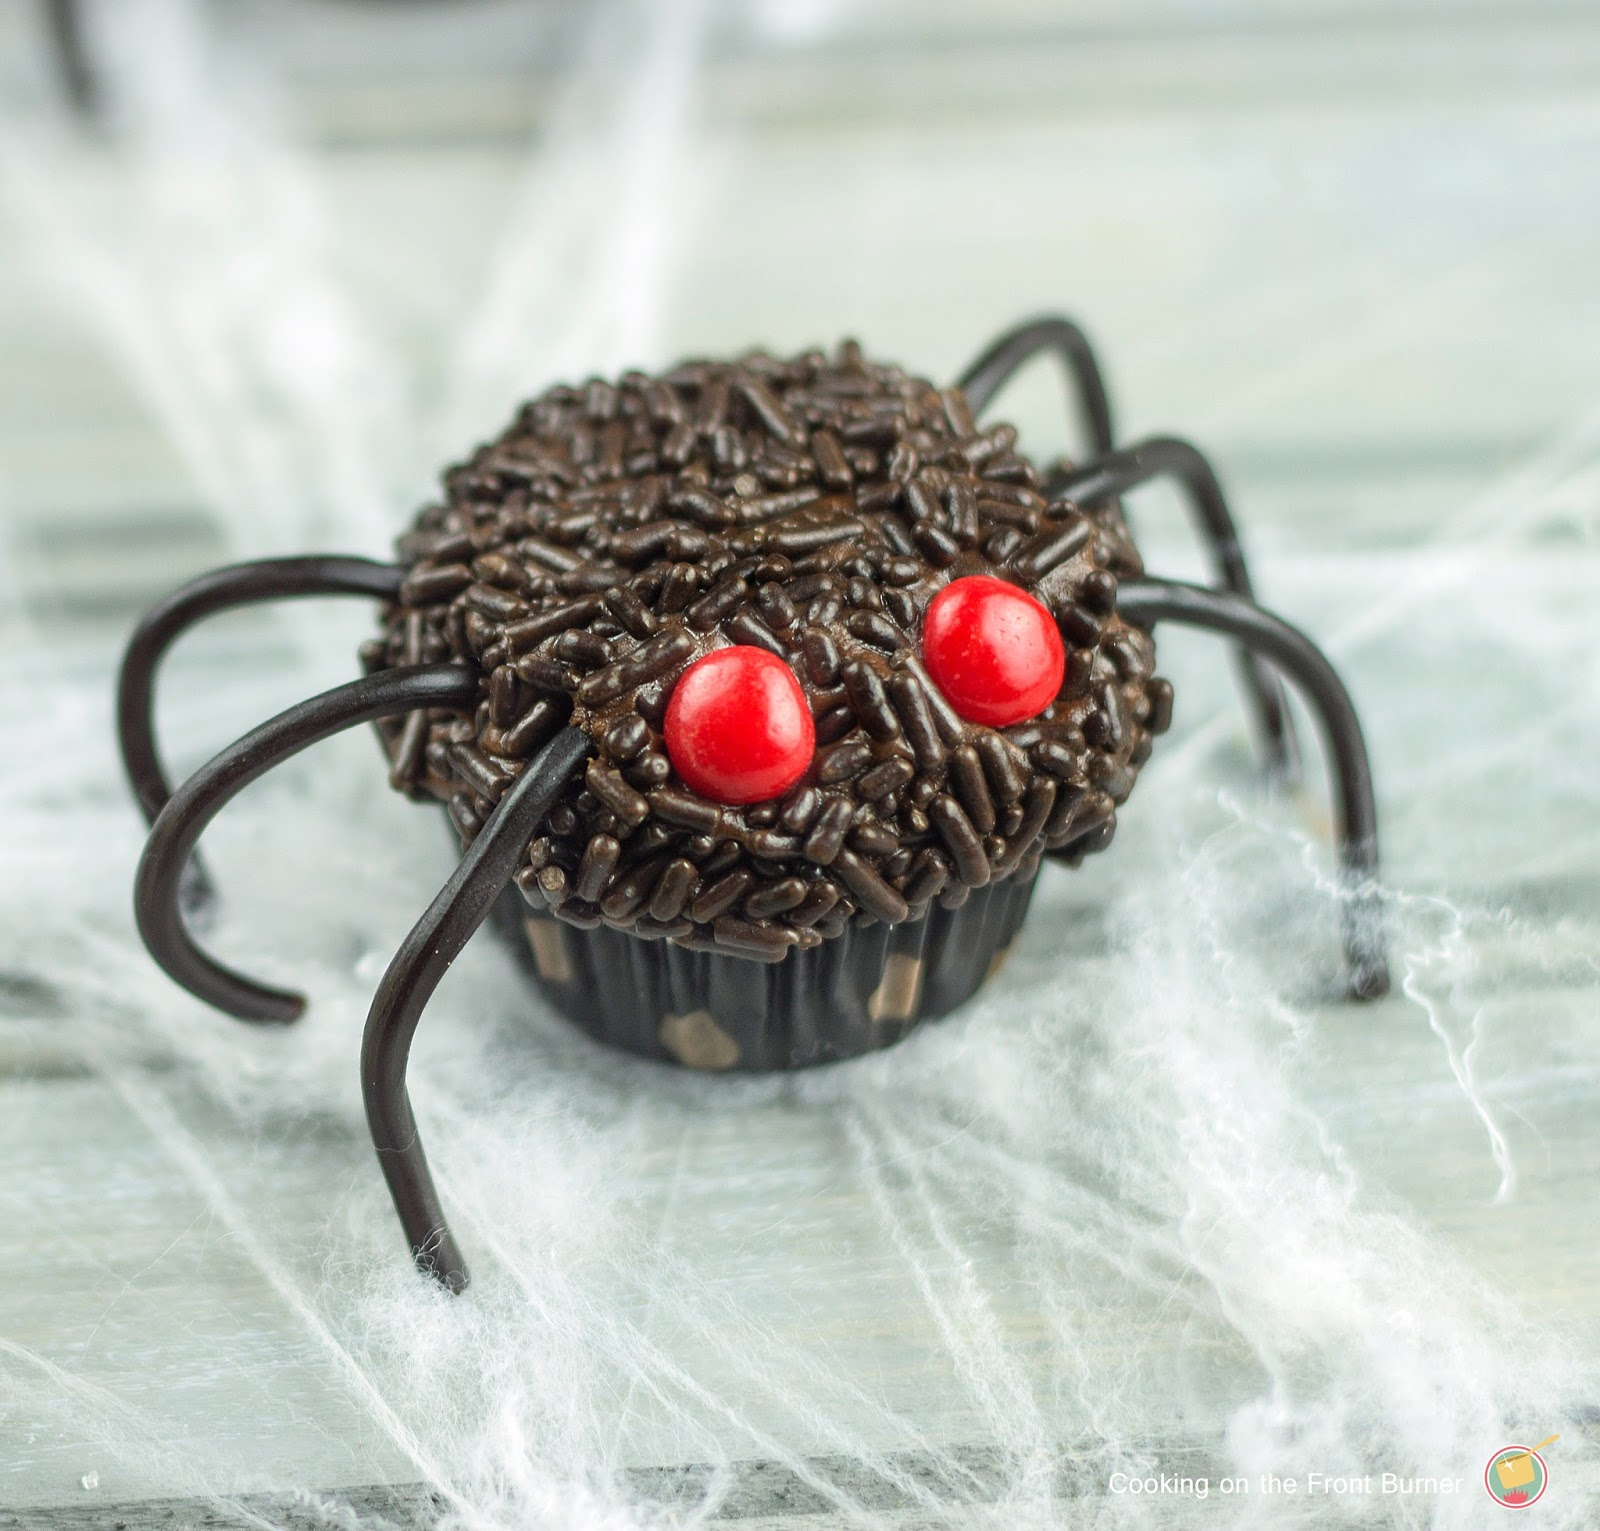 Spider Cupcakes | Cooking on the Front Burner